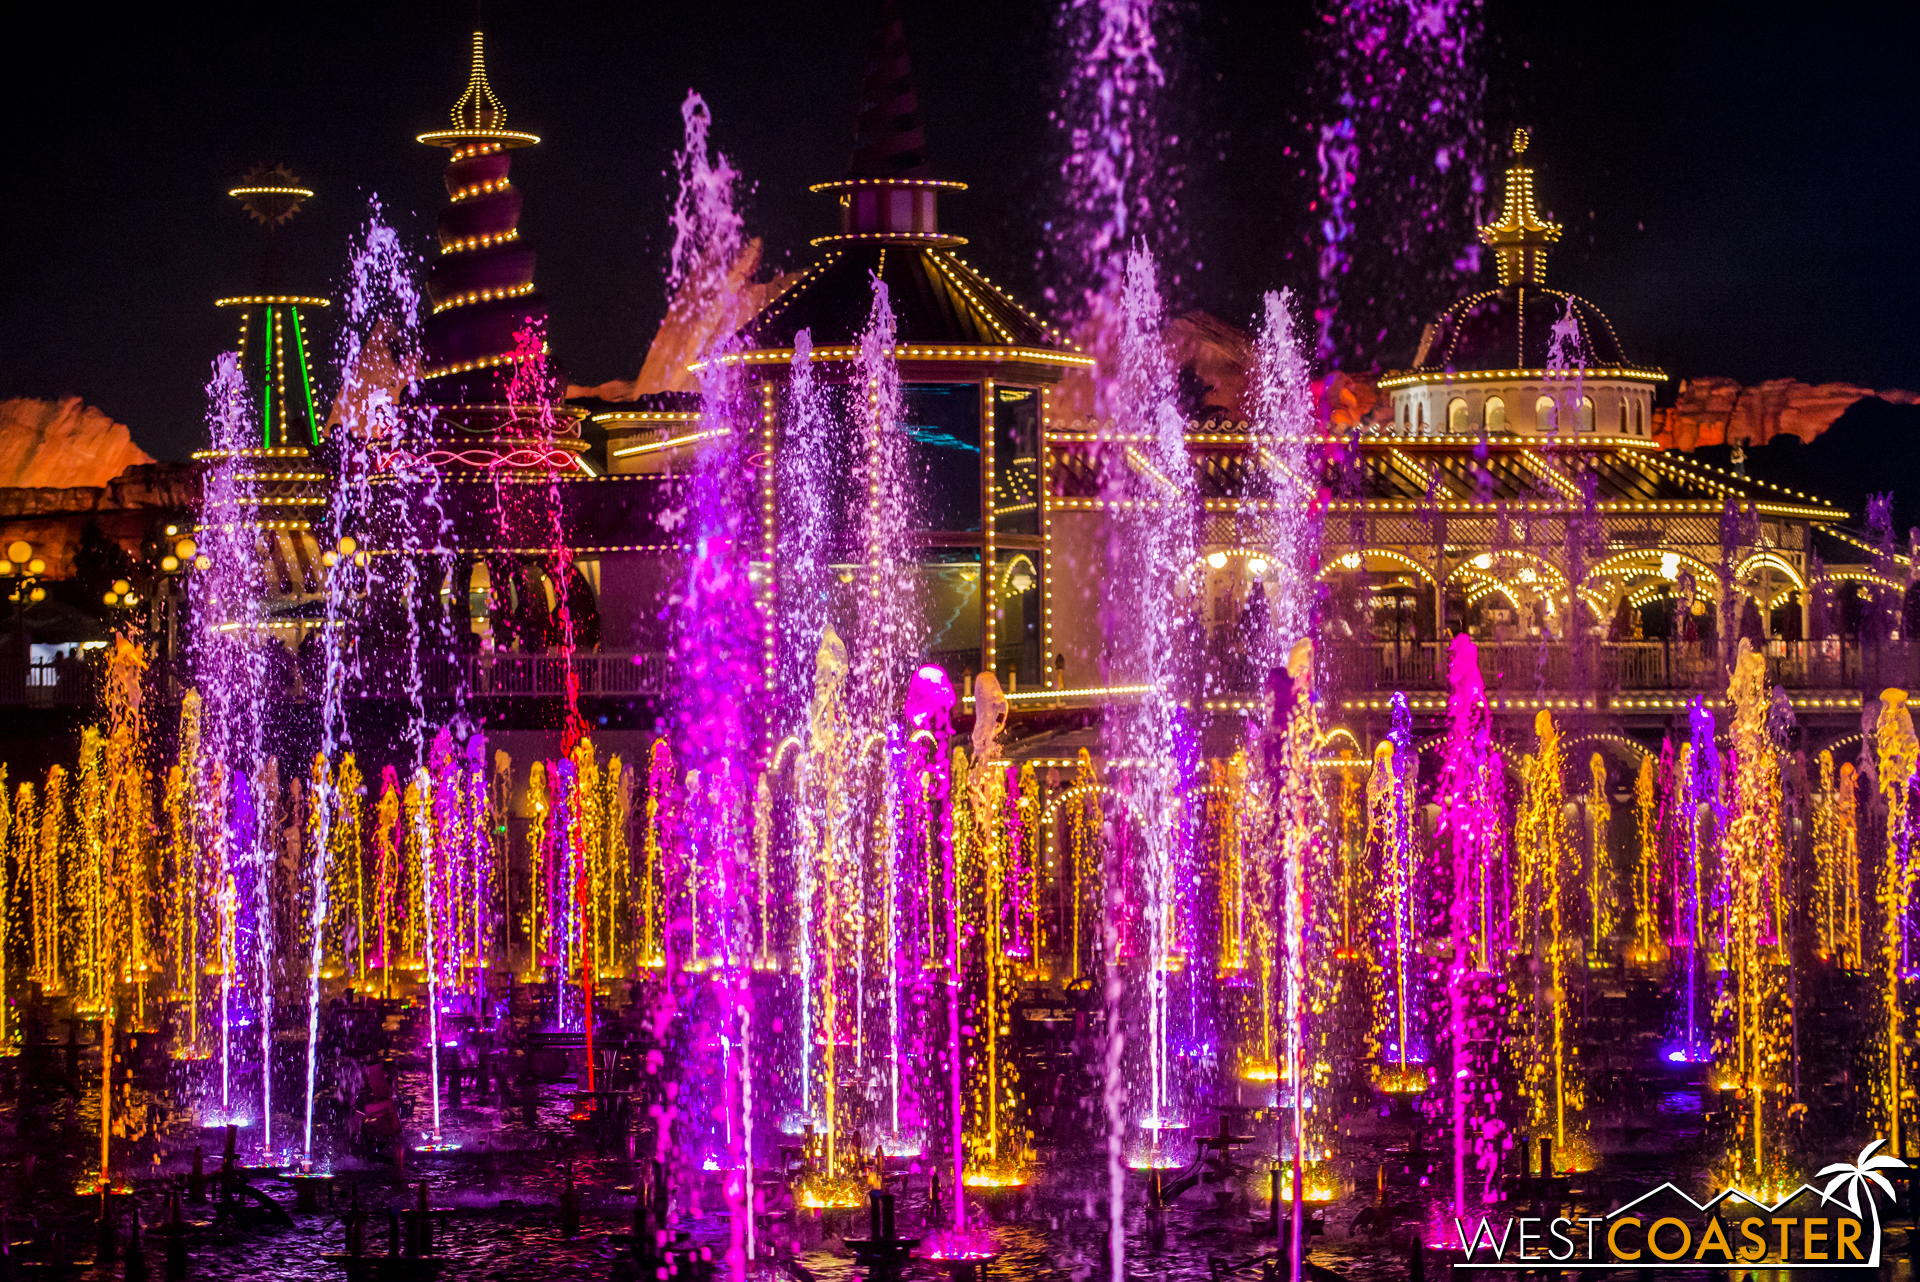 I love the playful spray and hues of the fountains.